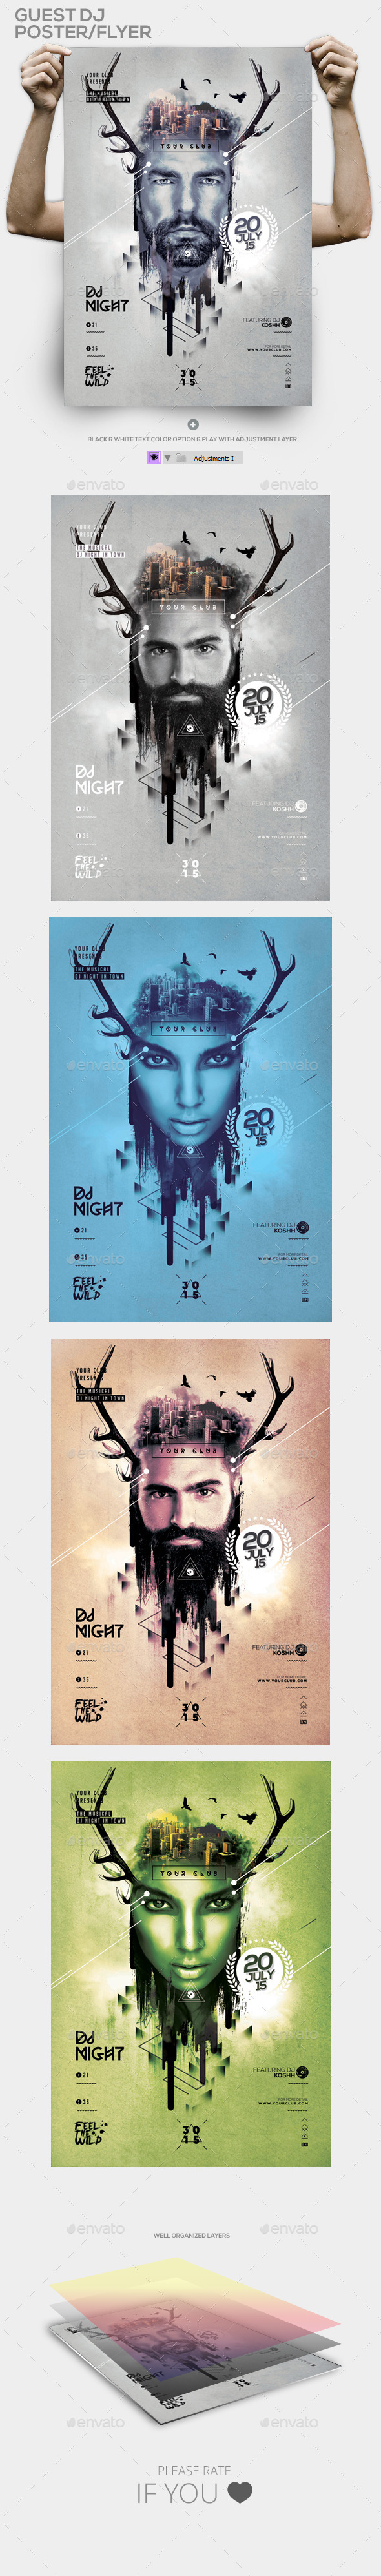 Hipster Guest Dj Template PSD Flyer/Poster - Events Flyers